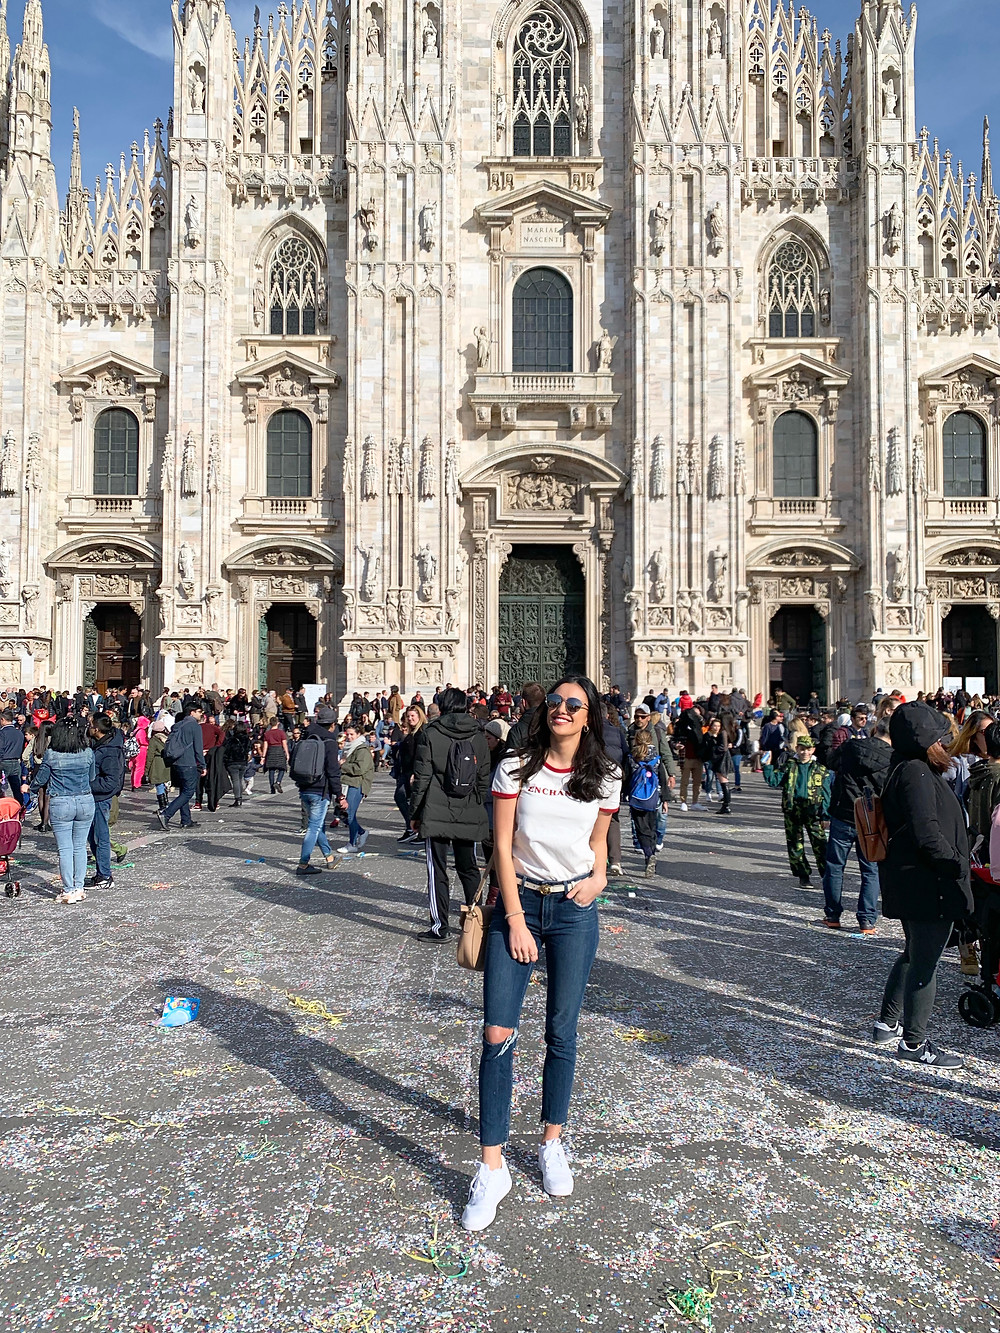 Milan, Italy - Travel Itinerary